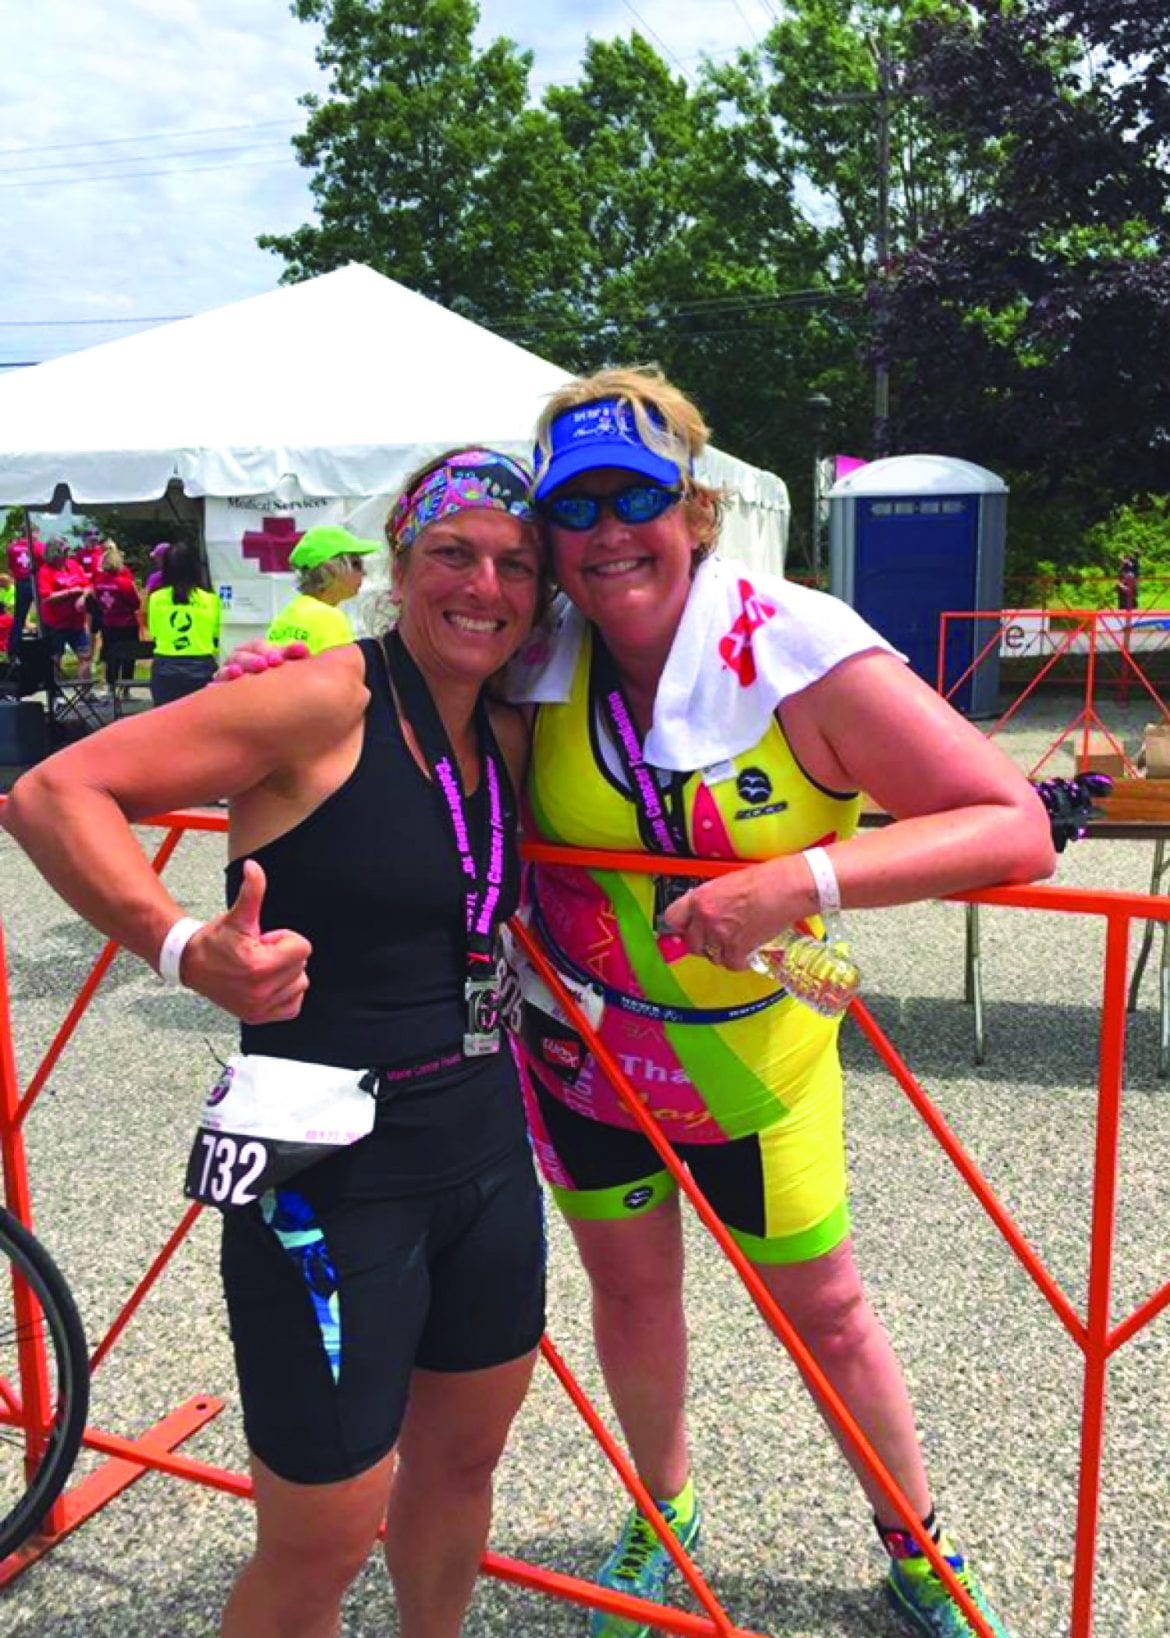 Meet Renaissance Woman Jean Ginn Marvin, one of Tri for a Cure's Biggest Supporters